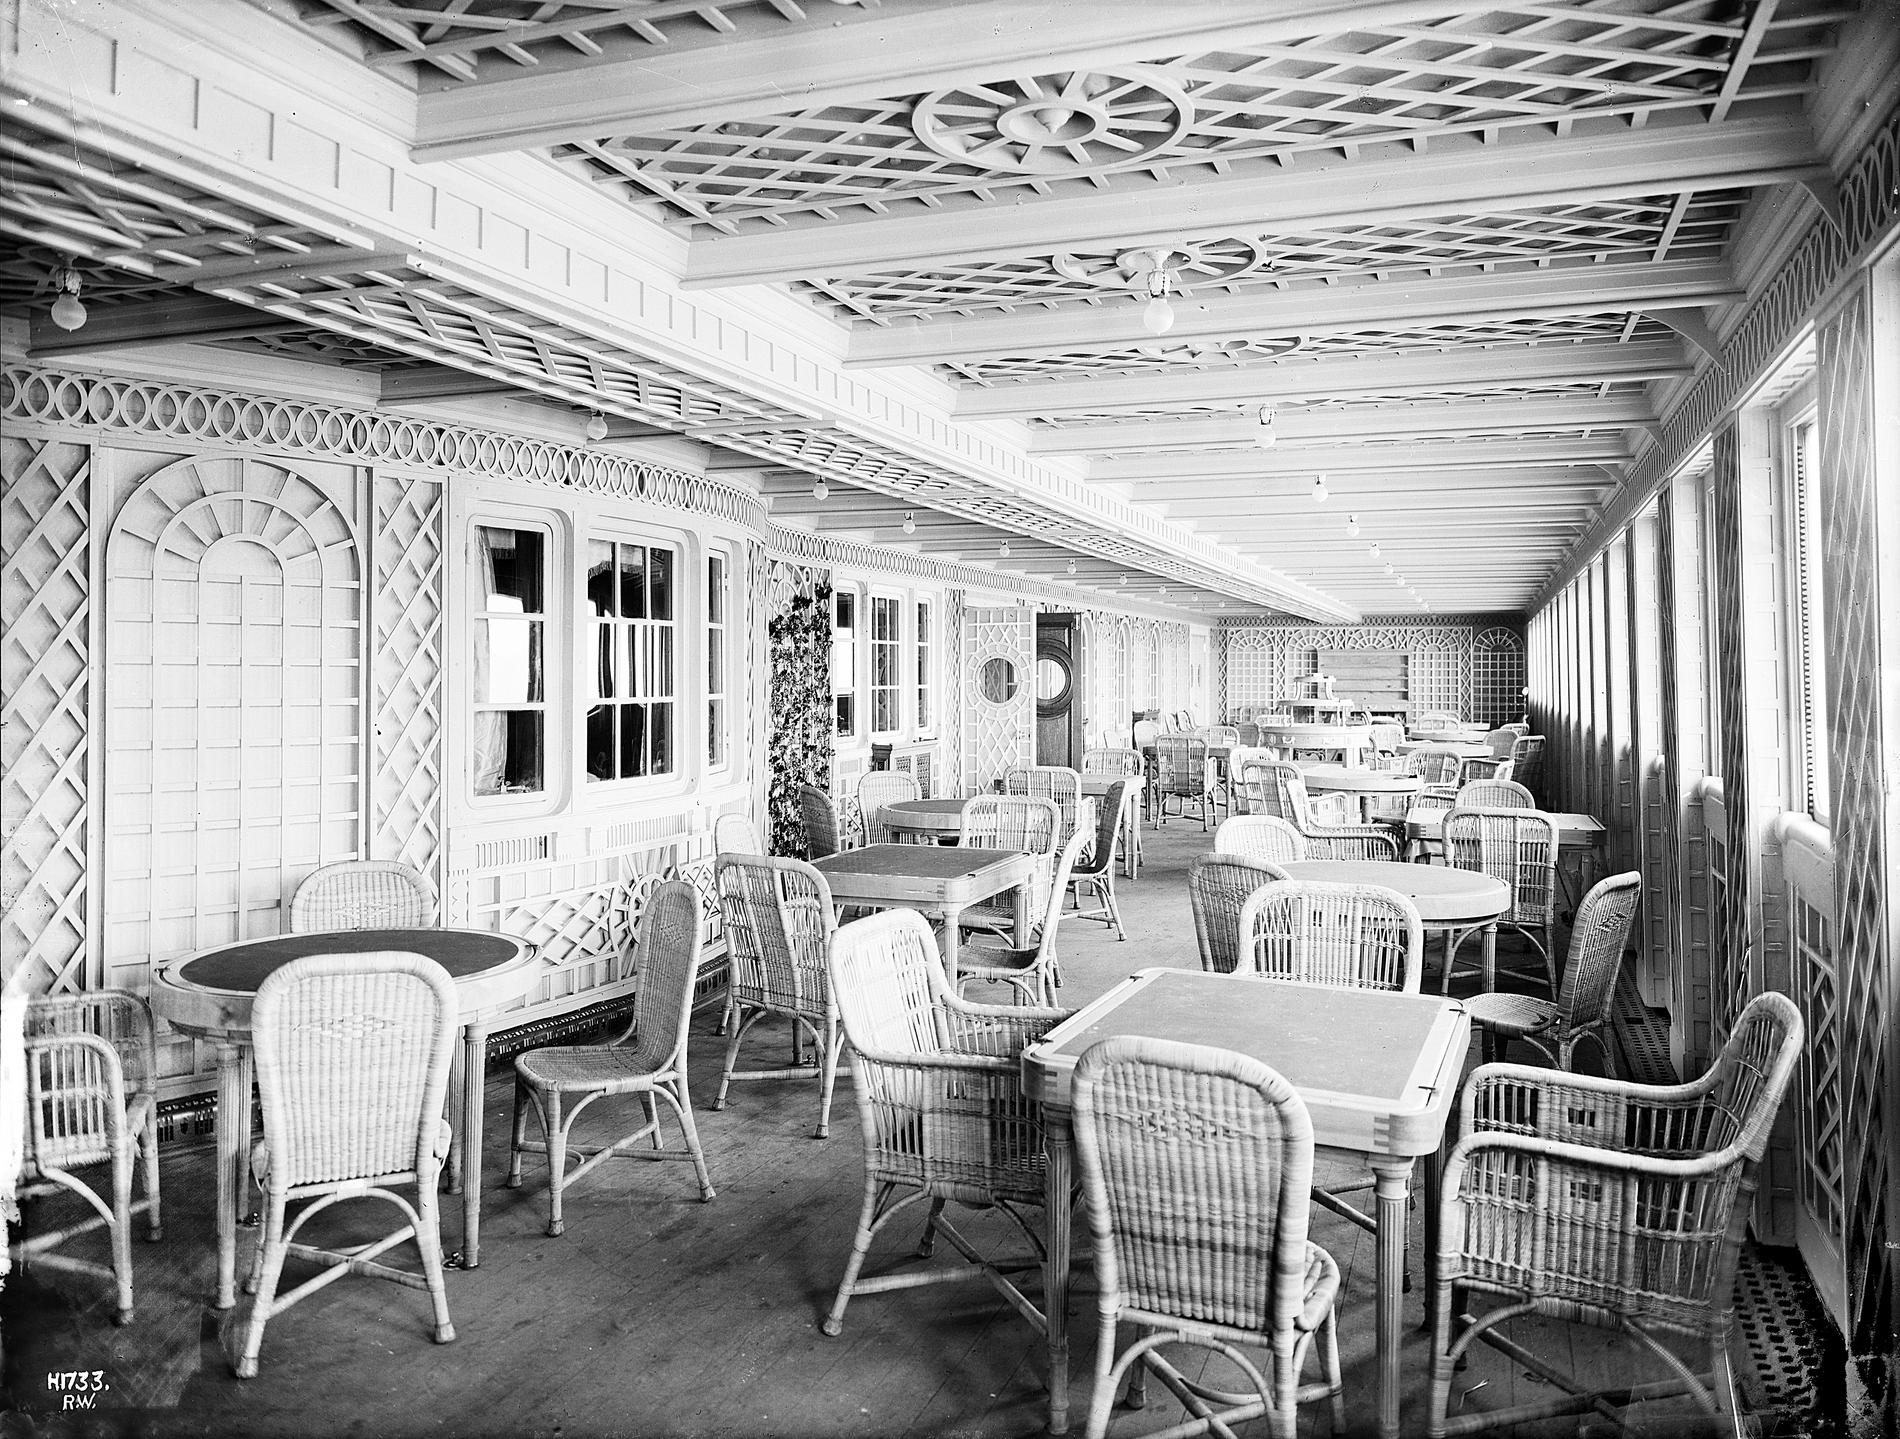 File:Titanic cafe parisien.jpg - Wikimedia Commons